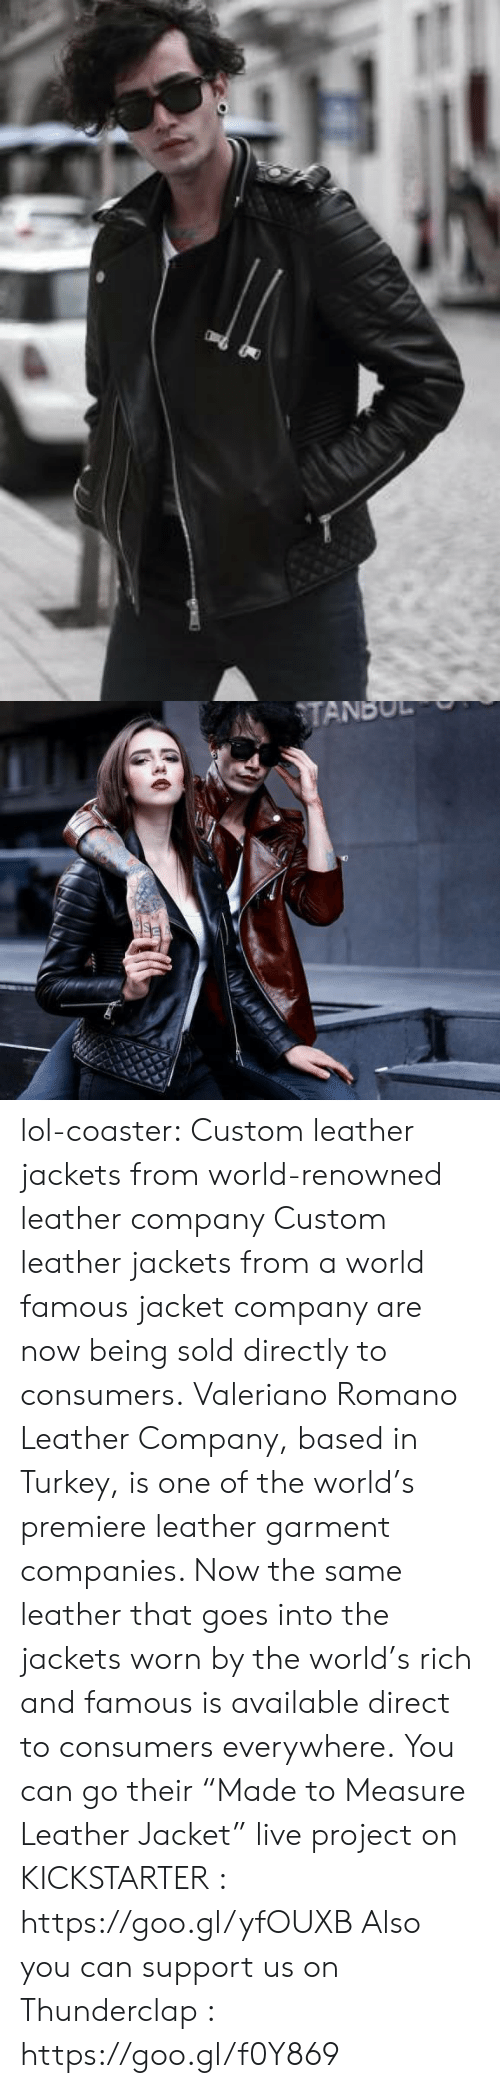 "Renowned: TANBUL lol-coaster:  Custom leather jackets from world-renowned leather company Custom leather jackets from a world famous jacket company are now being sold directly to consumers. Valeriano Romano Leather Company, based in Turkey, is one of the world's premiere leather garment companies. Now the same leather that goes into the jackets worn by the world's rich and famous is available direct to consumers everywhere. You can go their ""Made to Measure Leather Jacket"" live project on KICKSTARTER : https://goo.gl/yfOUXB Also you can support us on Thunderclap : https://goo.gl/f0Y869"